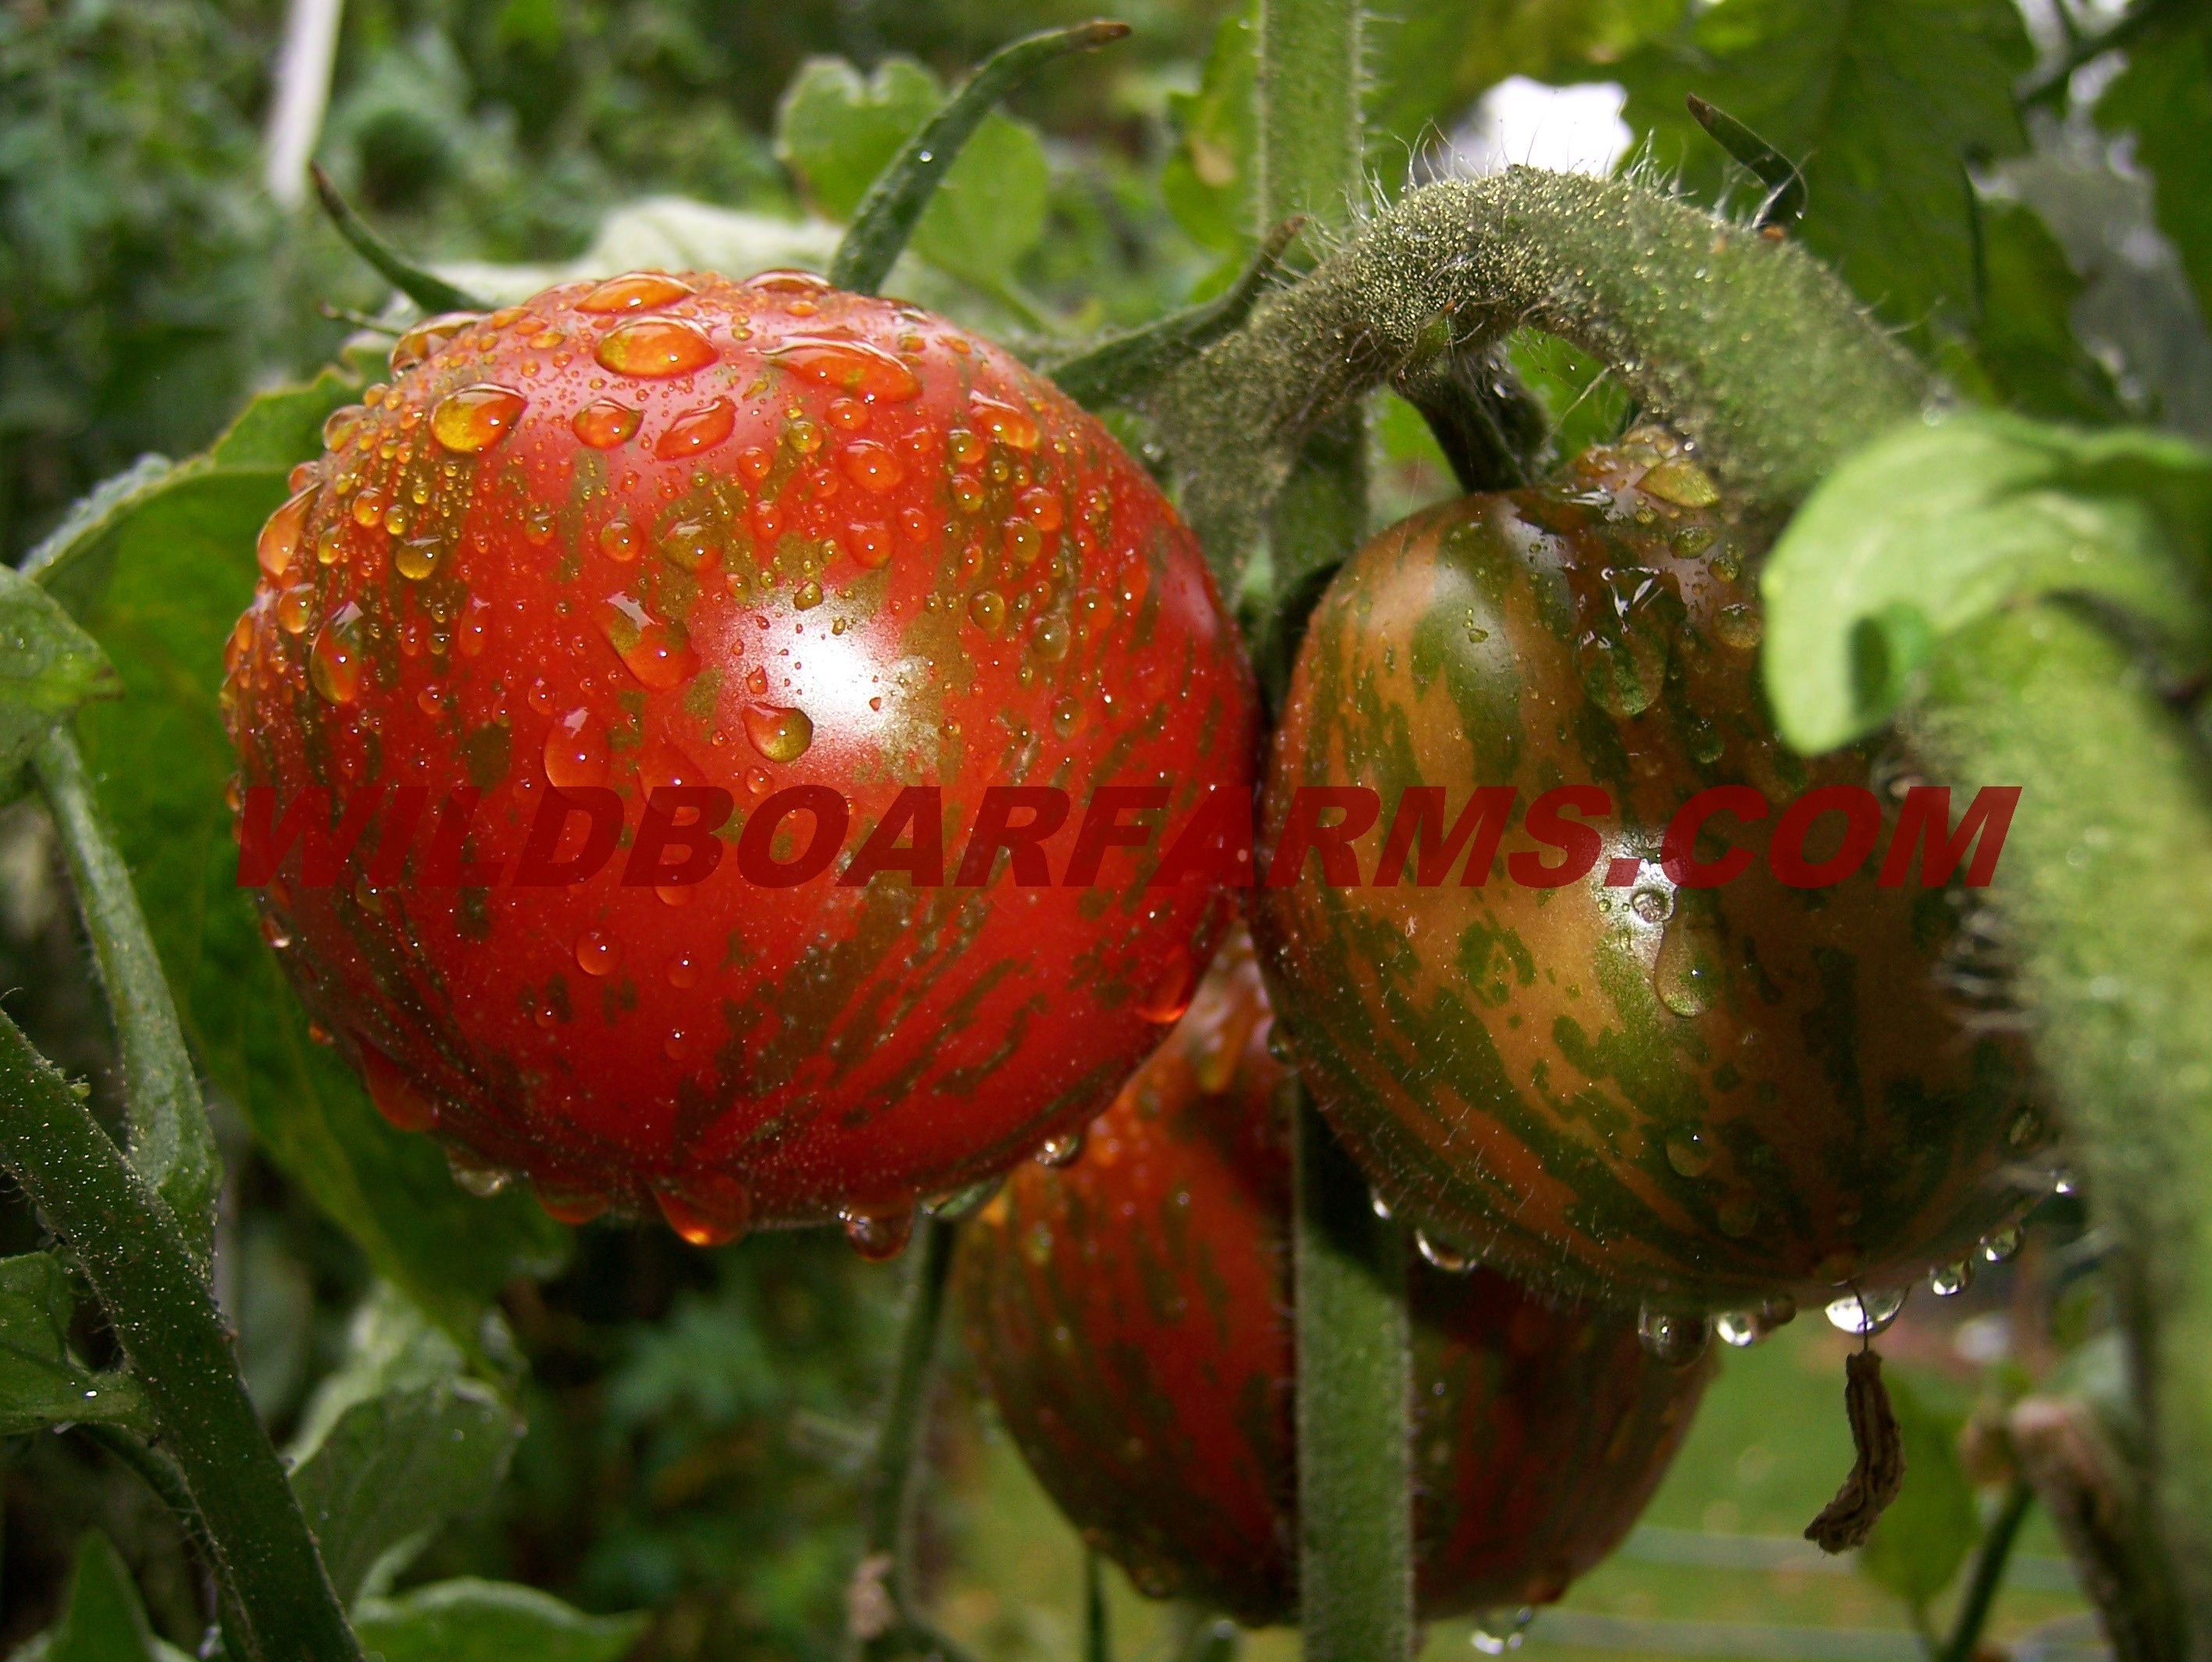 Wild Boar Farms Tomatoes 22